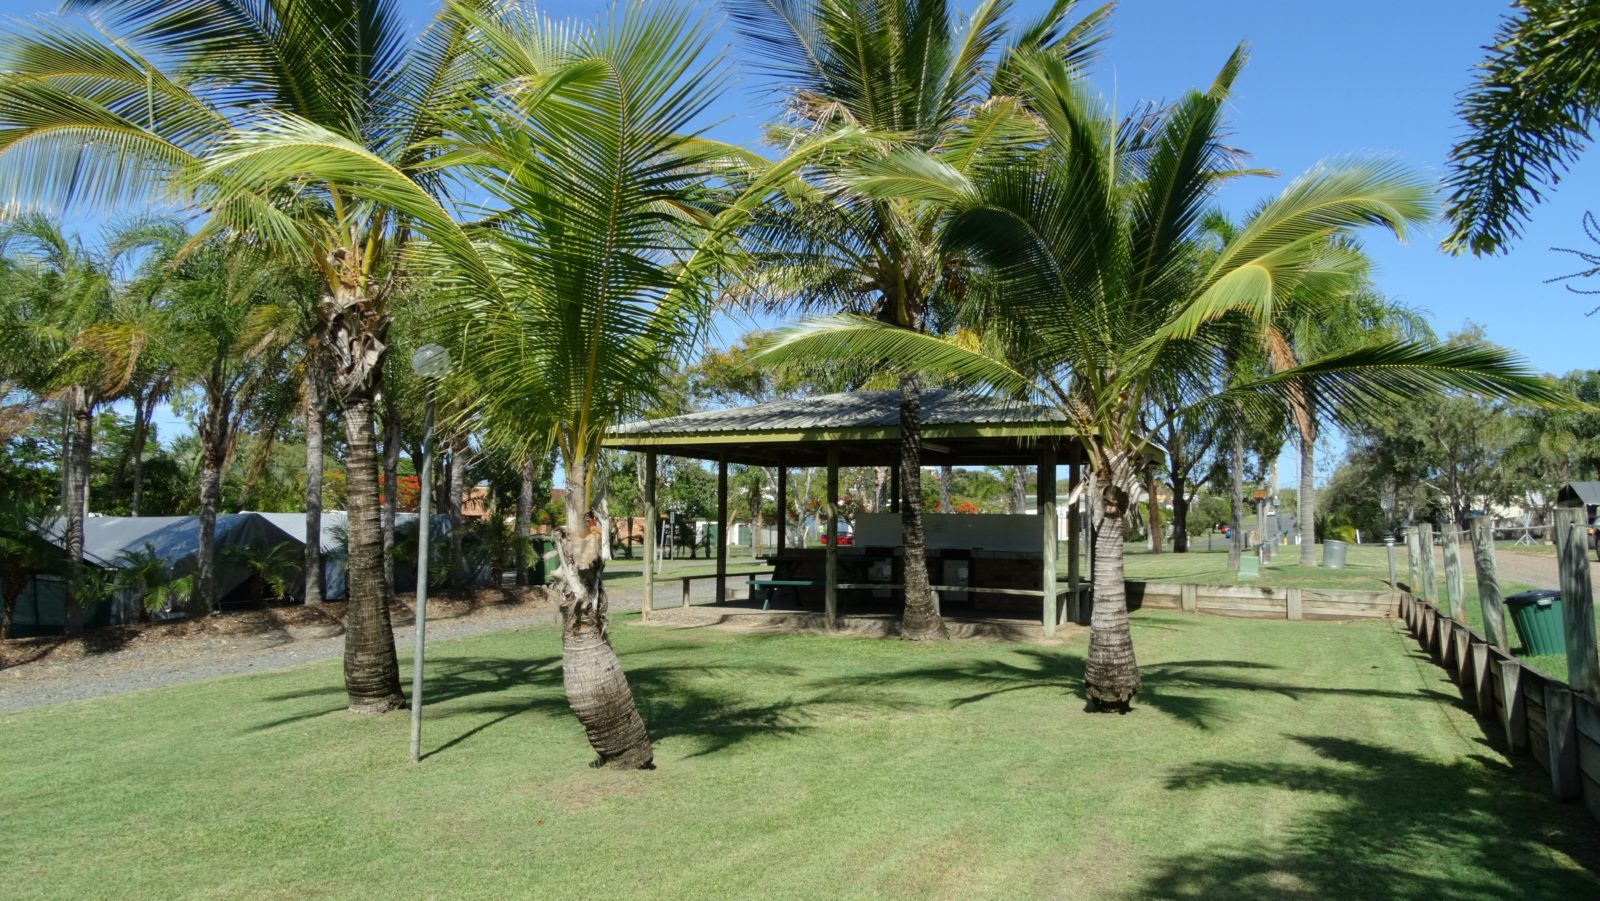 Poinciana Tourist Park